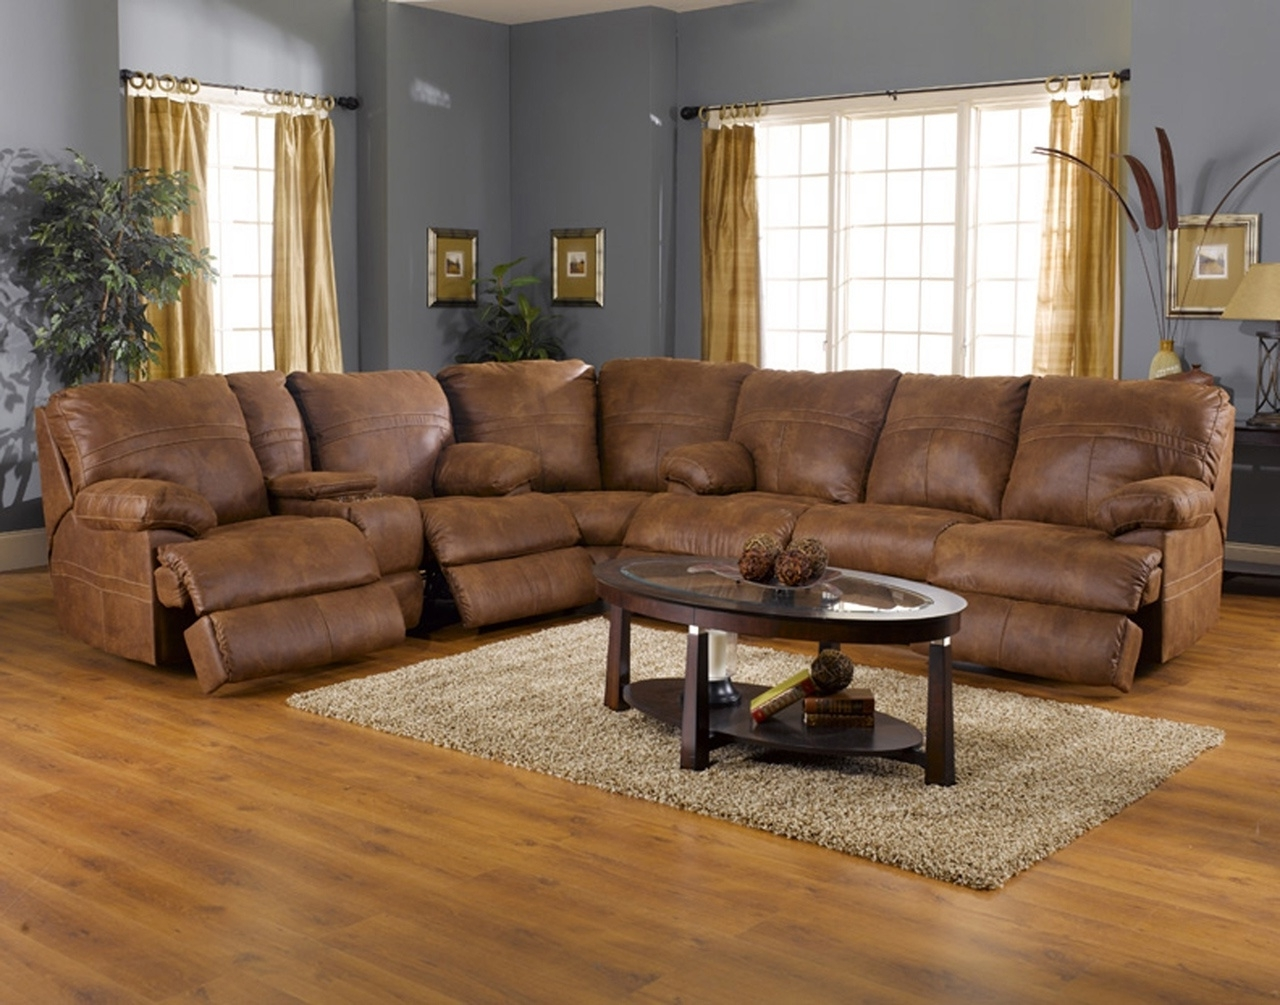 2018 Reclining Sectional Sofas Inside Elegant Reclining Sectional Sofas 93 About Remodel Sofa Table (View 1 of 20)